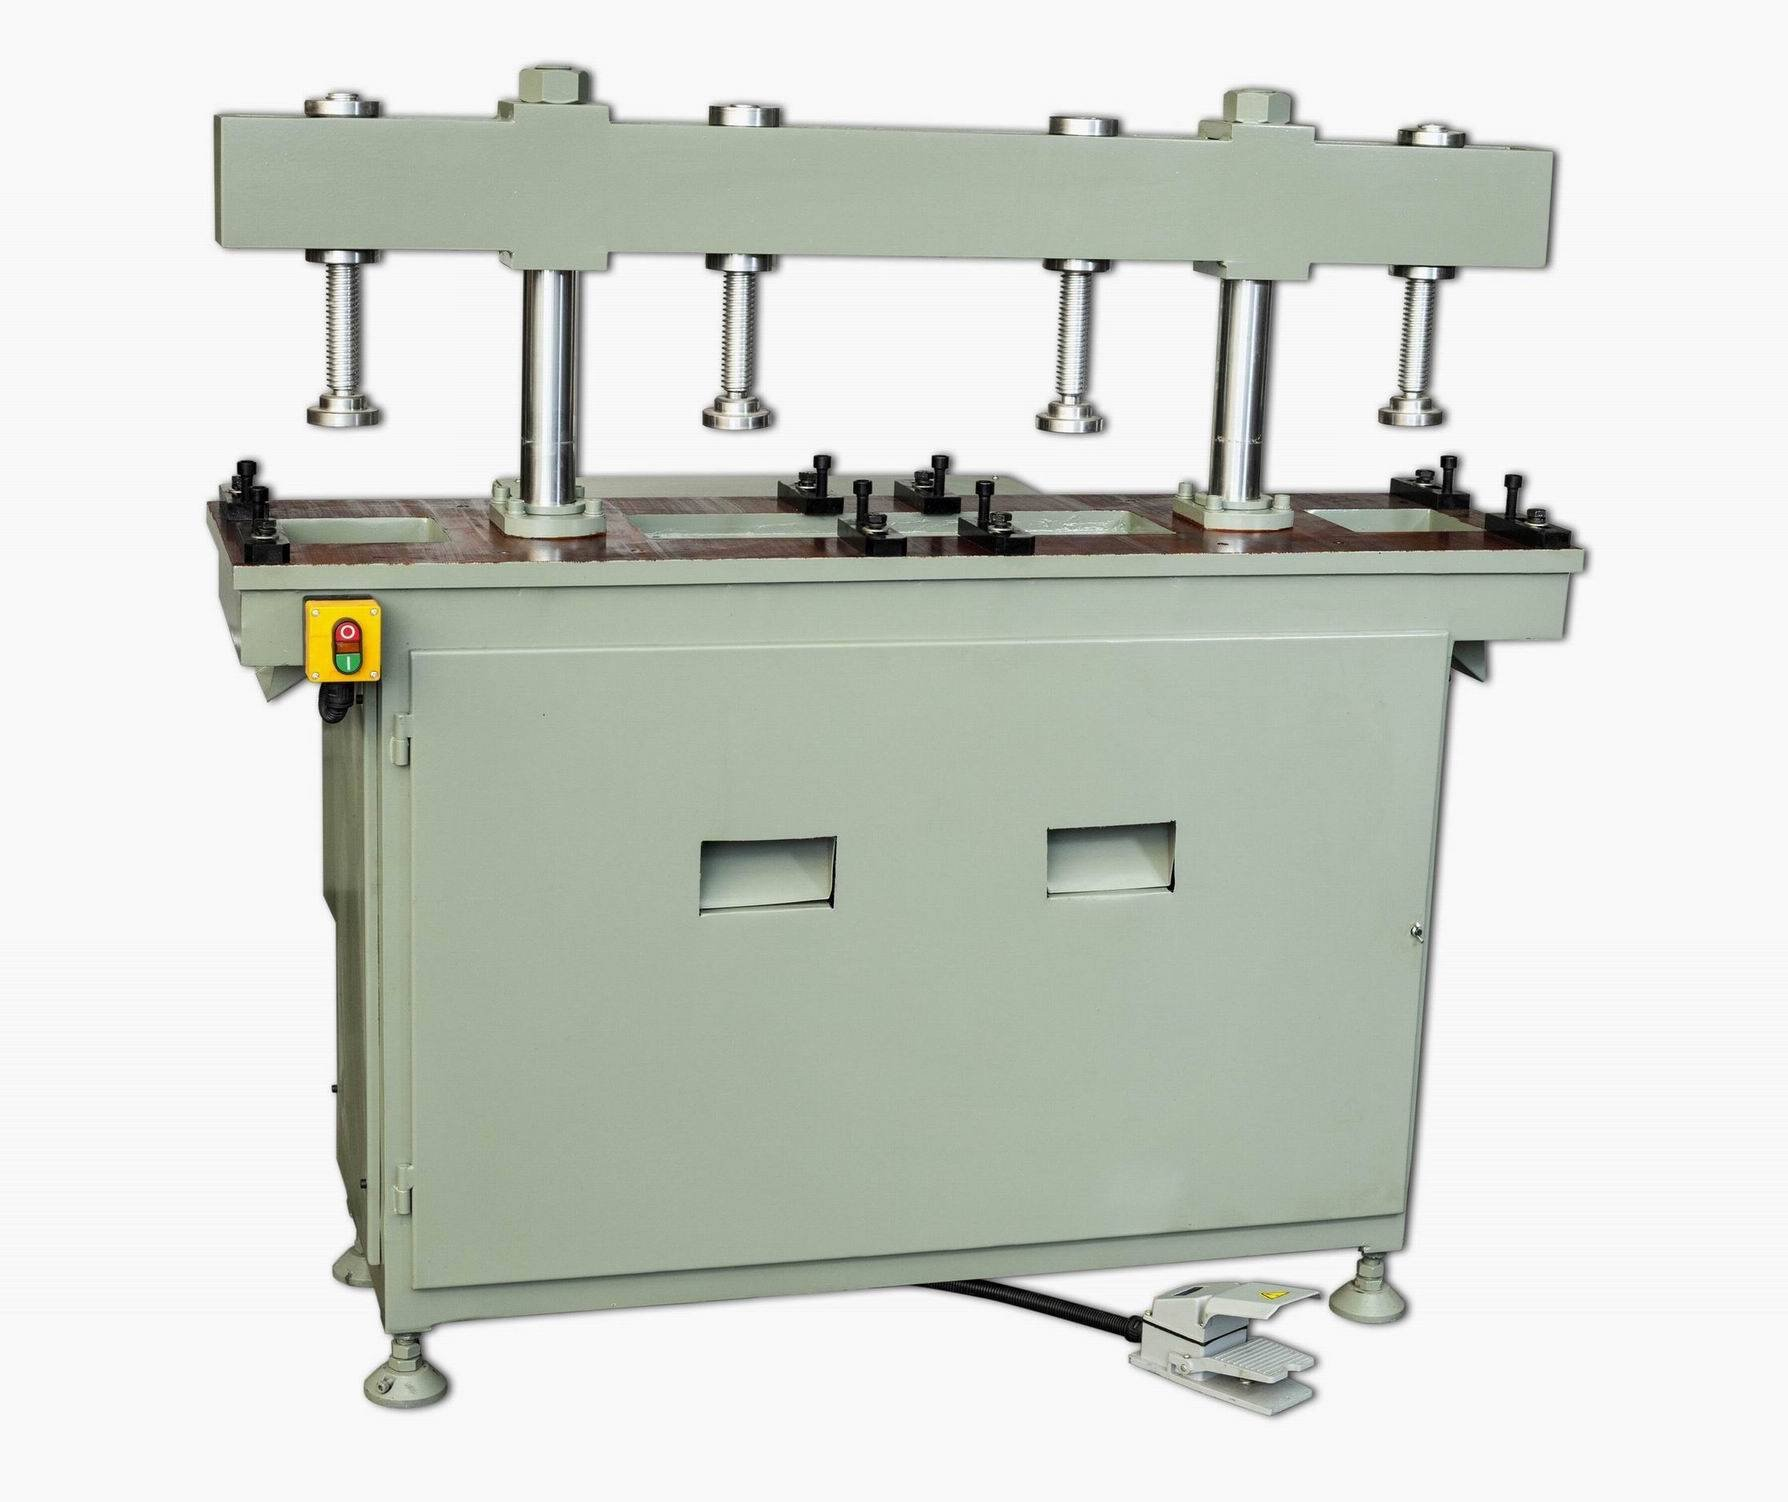 kingtool aluminium machinery KT-373 Double Column Hydraulic Aluminum Punching Machine Aluminum Punching Machine image2